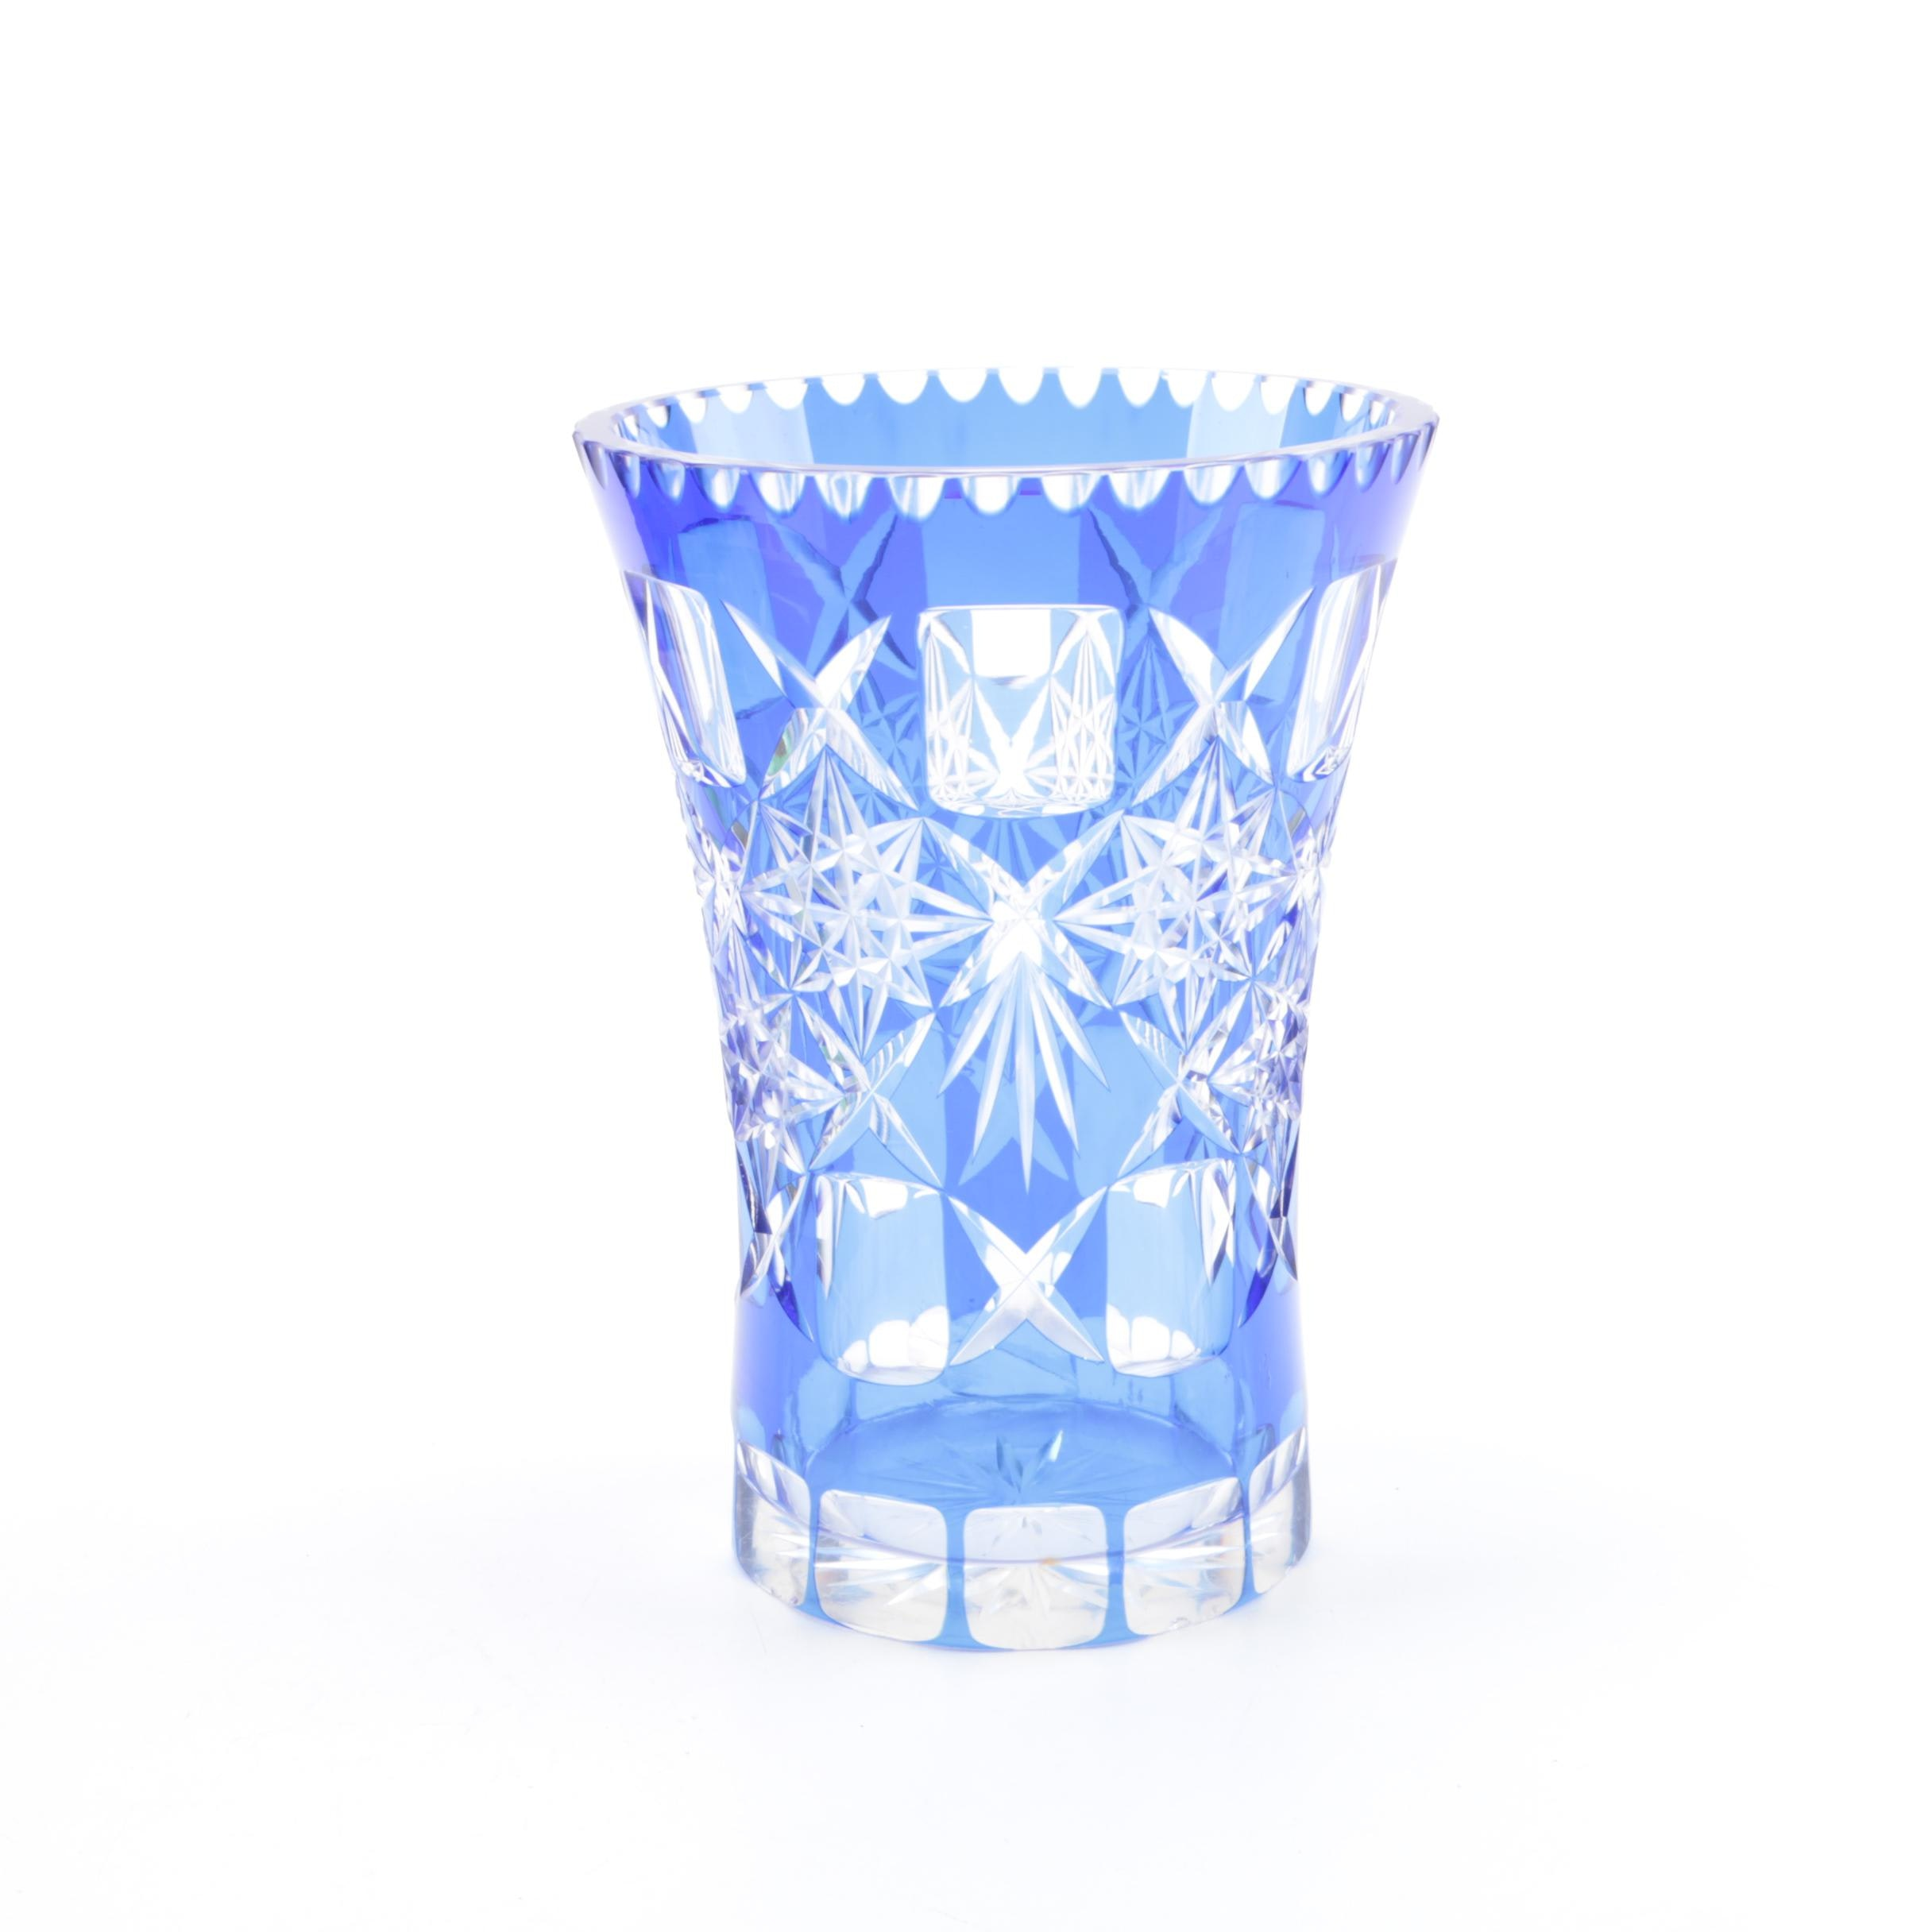 Bohemian Style Cased Blue Cut to Clear Crystal Vase